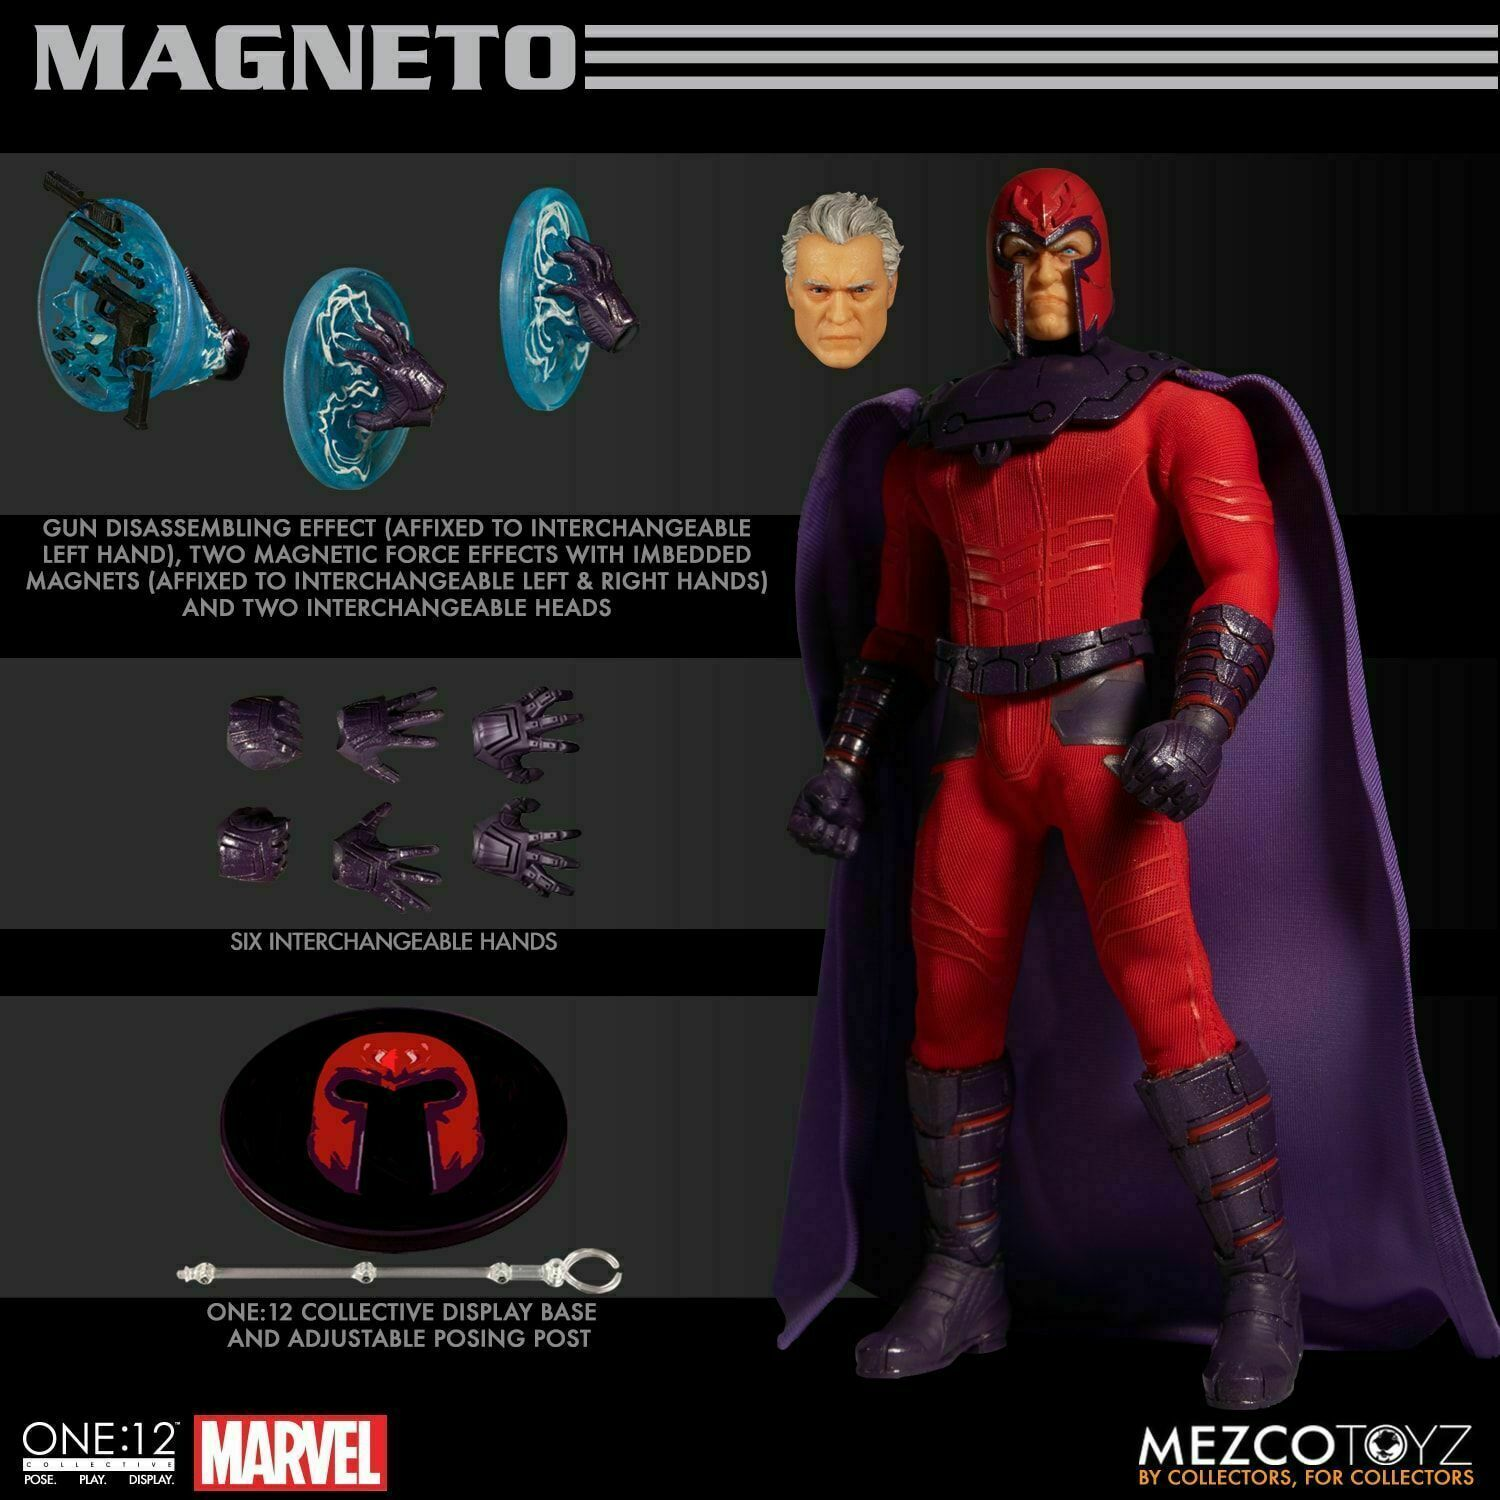 Mezco Magneto azione cifra One 12 Collective 6 Marvel Xessi IN STOCK